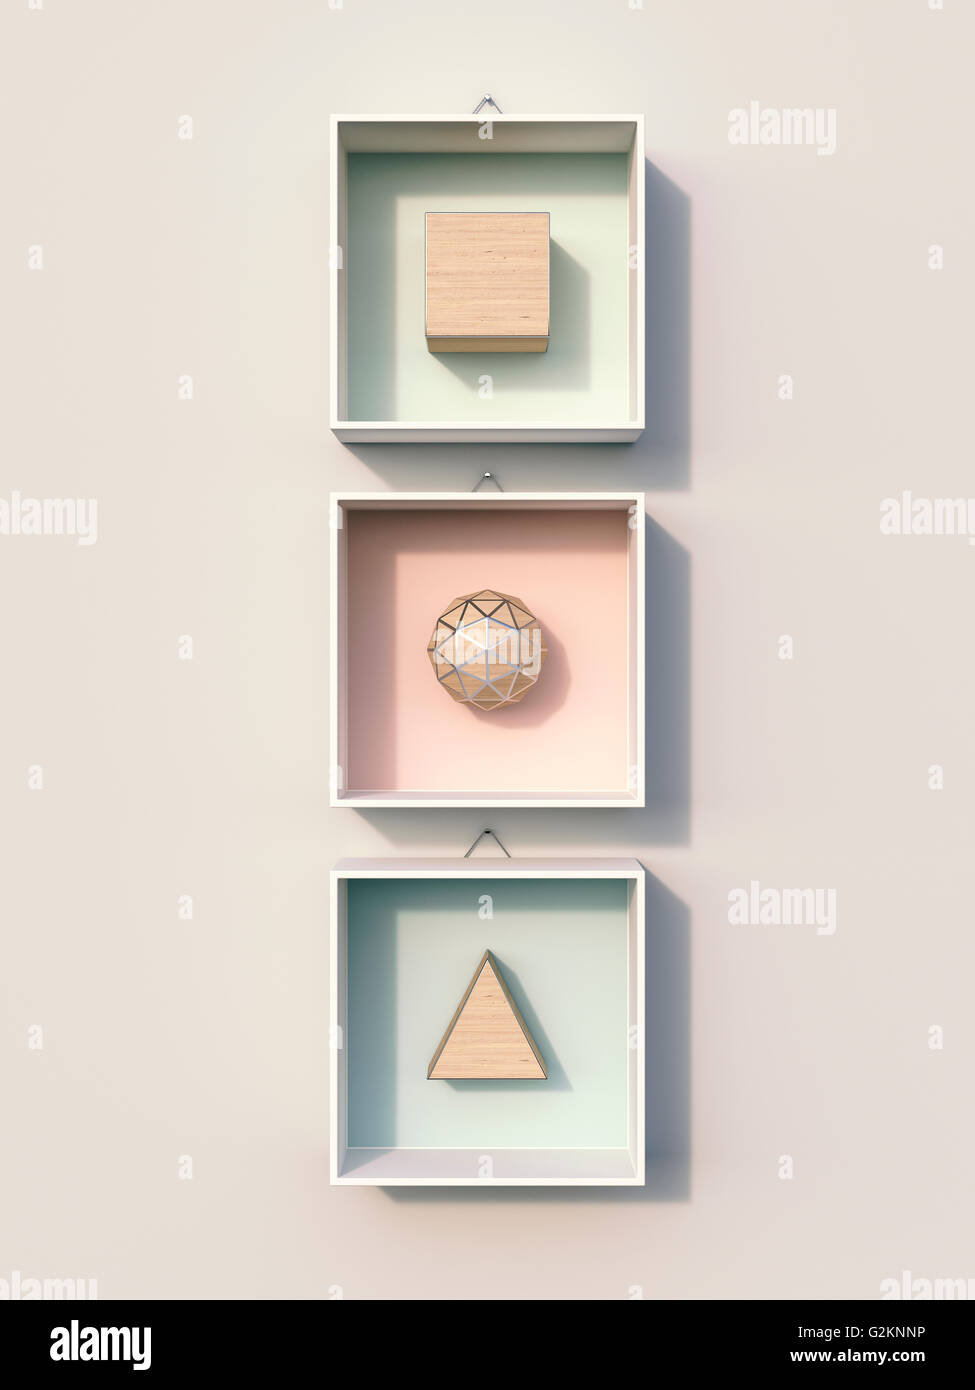 Geometric shapes hanging on wall, 3d rendering - Stock Image